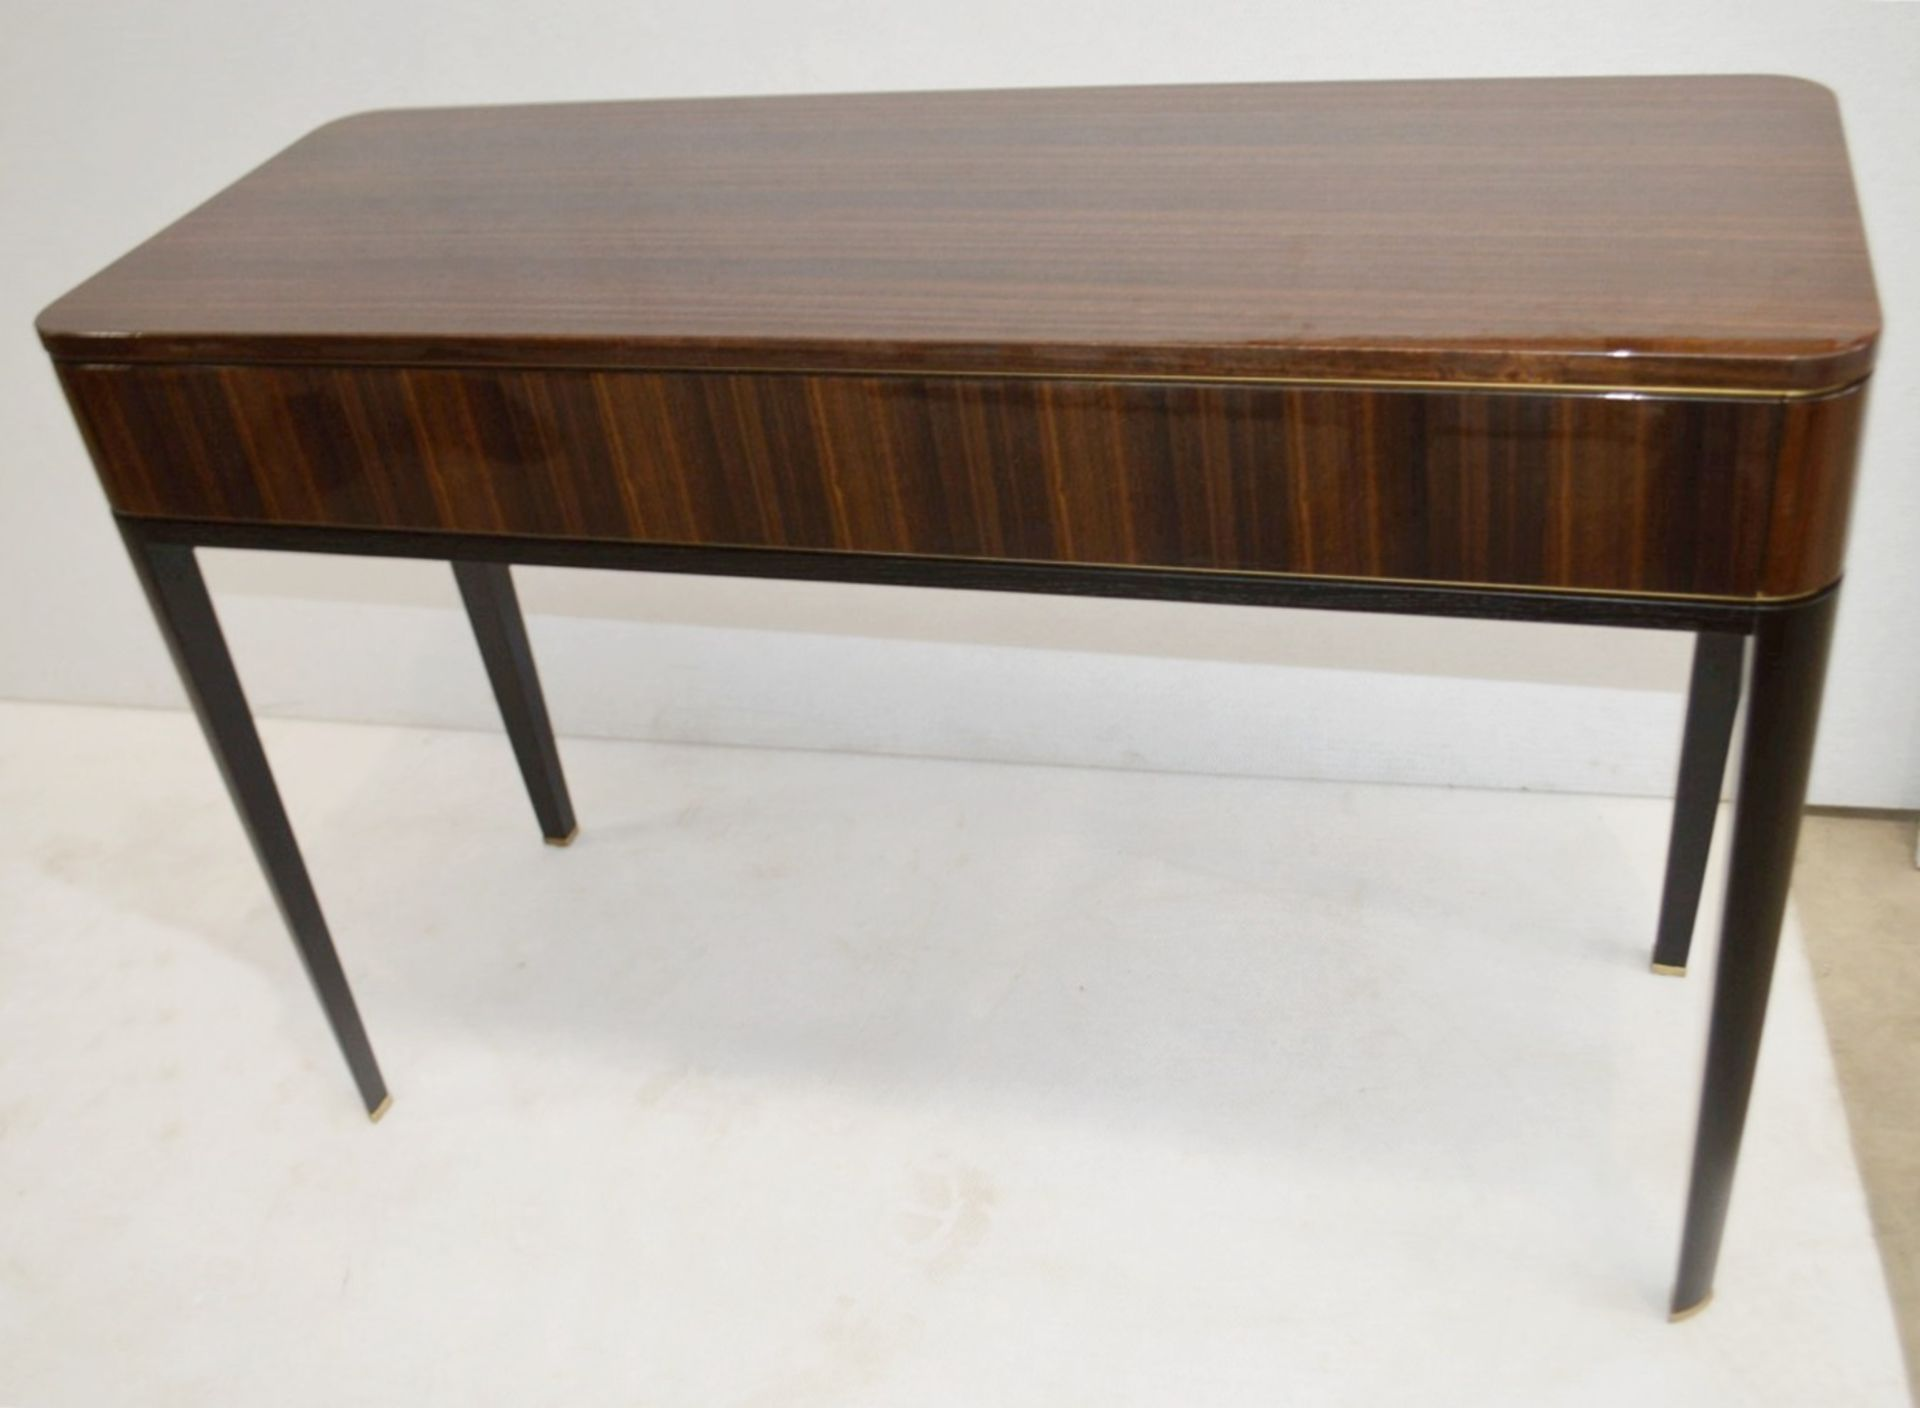 1 x FRATO 'Mandalay' Luxury Designer 2-Drawer Dresser Dressing Table In A Gloss Finish - RRP £4,300 - Image 3 of 17